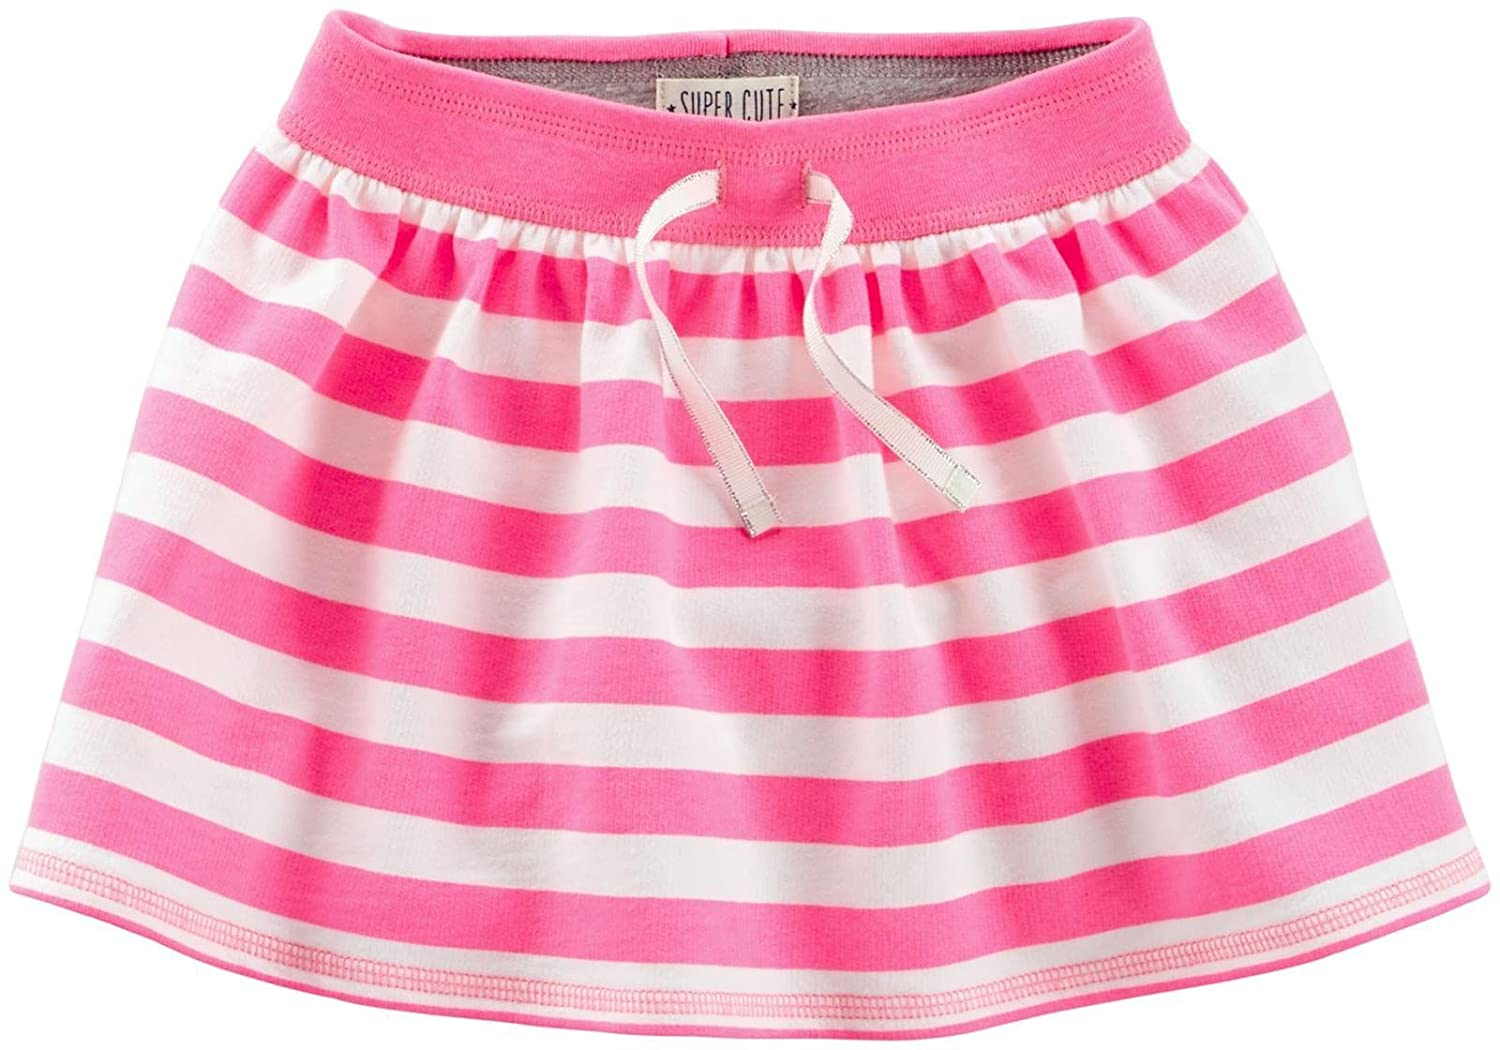 Amazon.com: Carters Francés Terry rayas patinete Falda Rosa ...